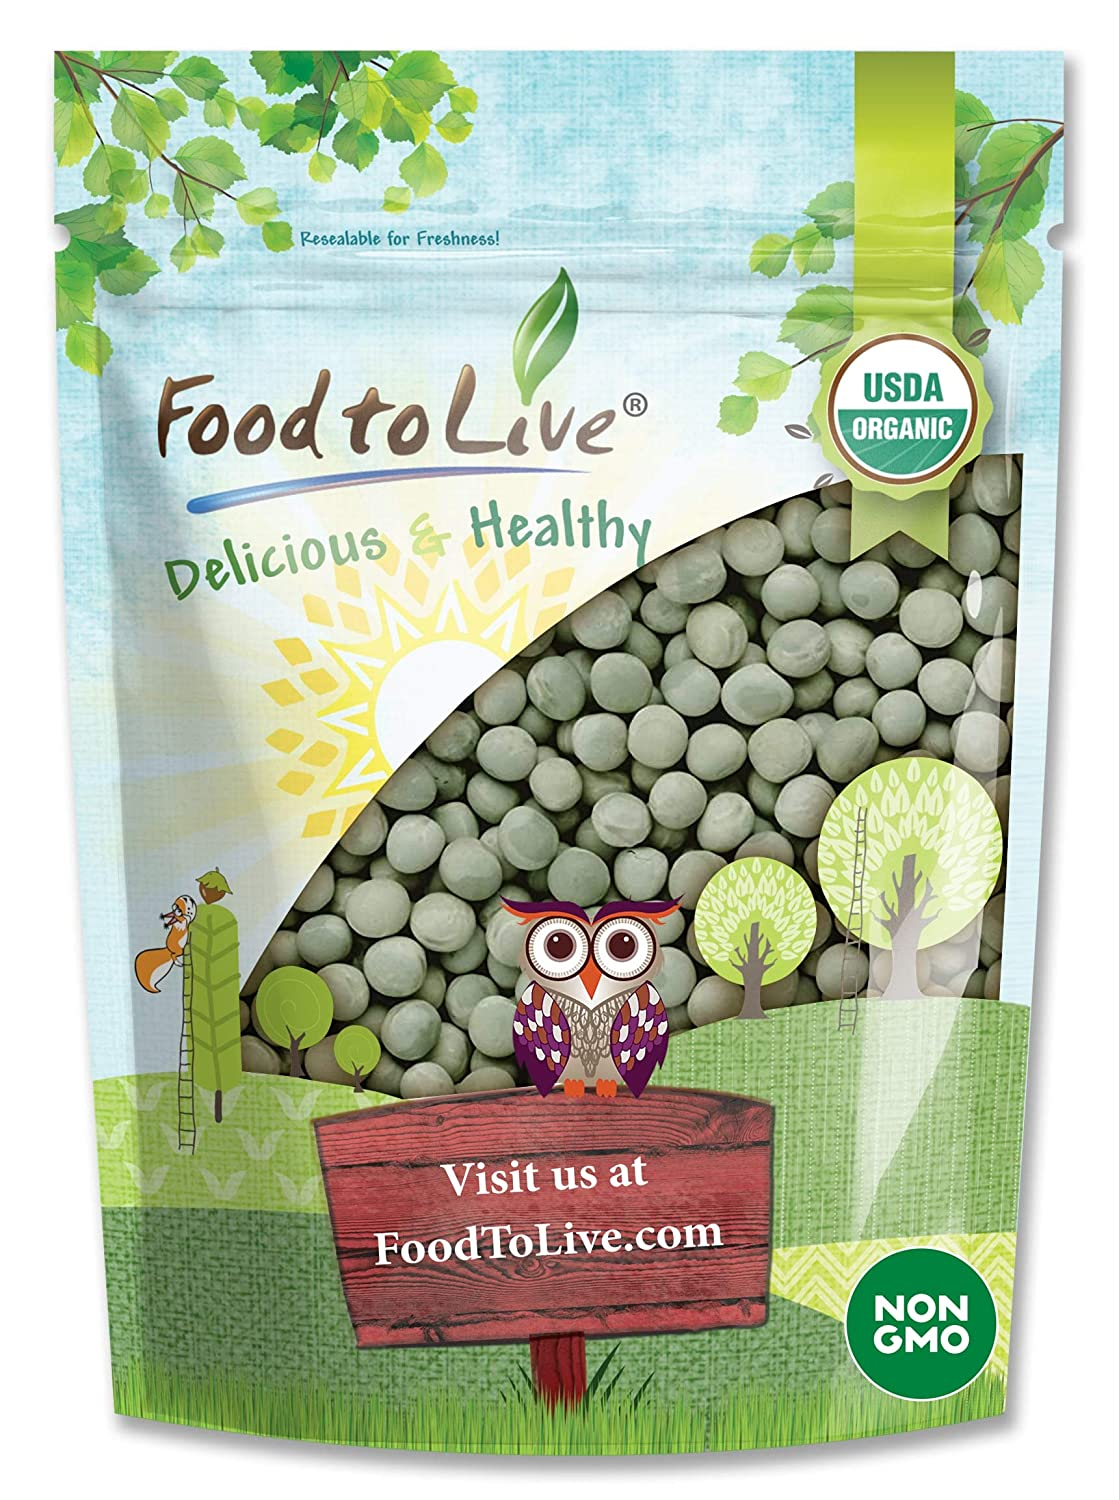 Organic Green Peas (Sproutable, Kosher, Non-GMO, Raw, Dried) by Food to Live — 4 Pounds